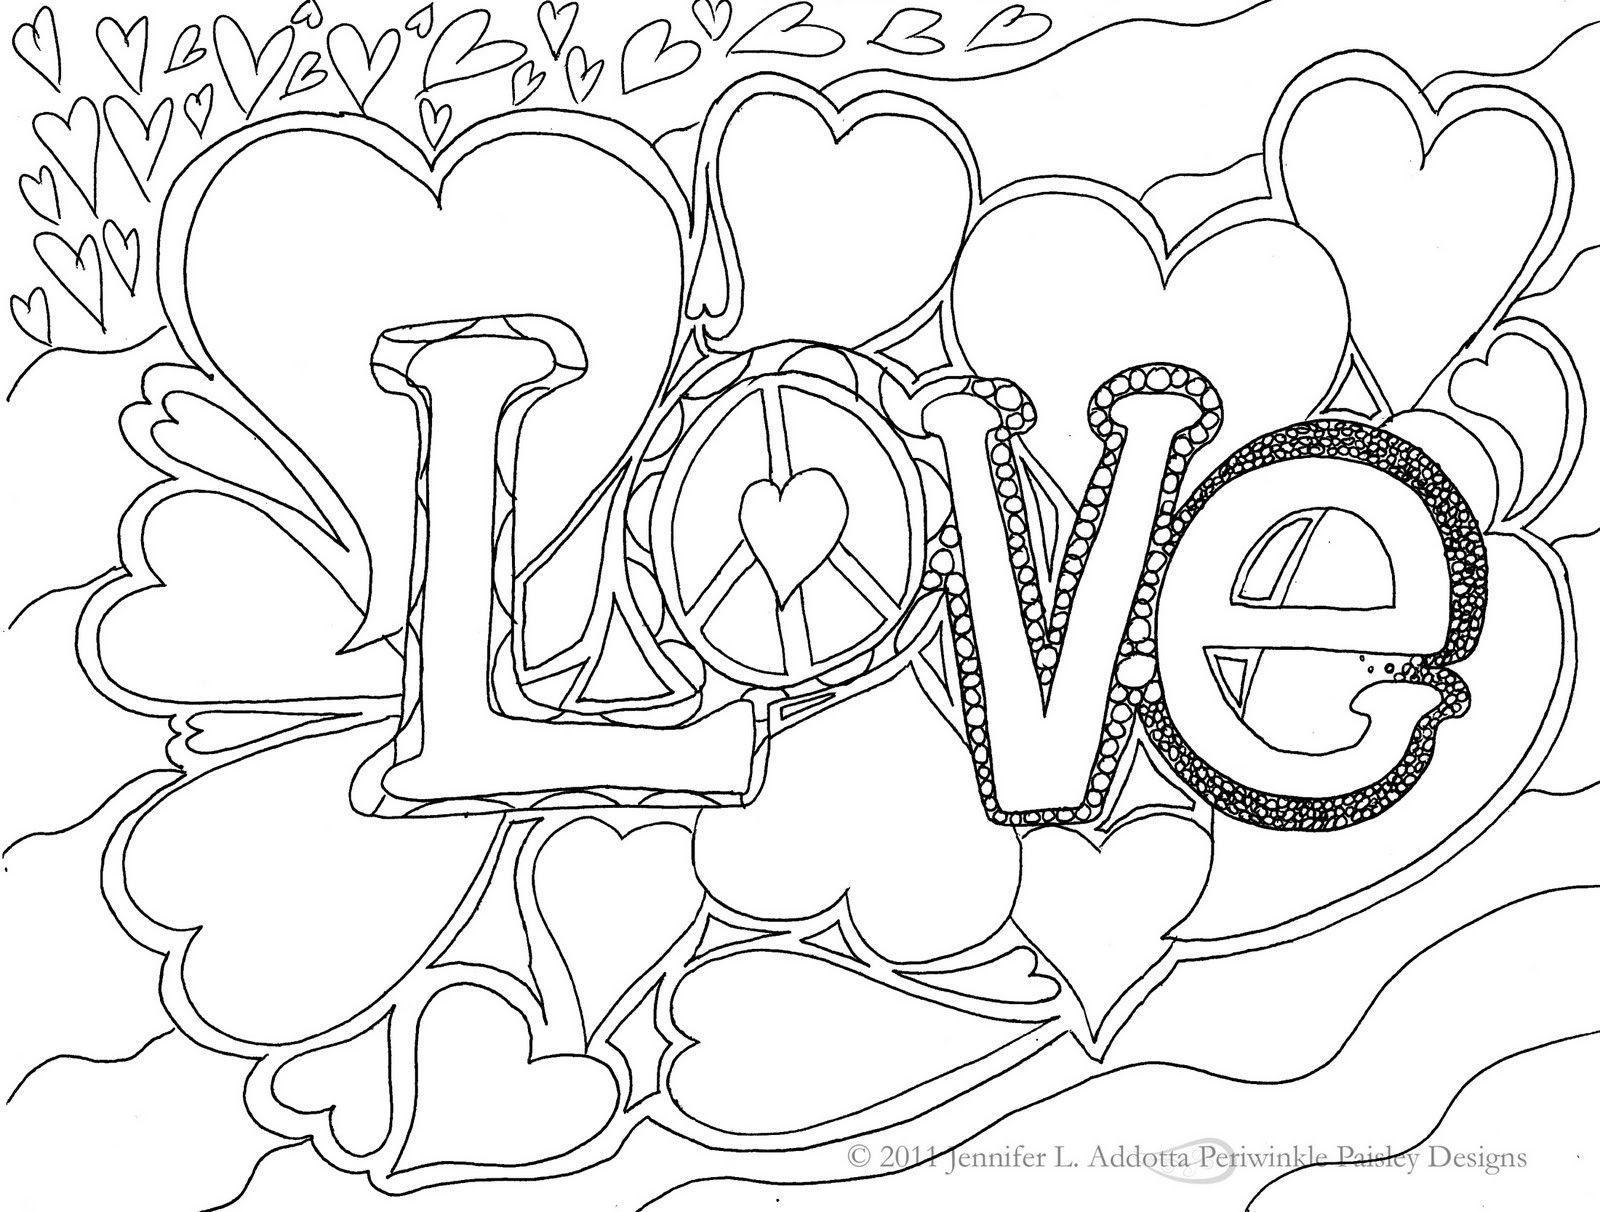 Fabulous Coloring Pages For Kids Pdf 9 Color book for kids